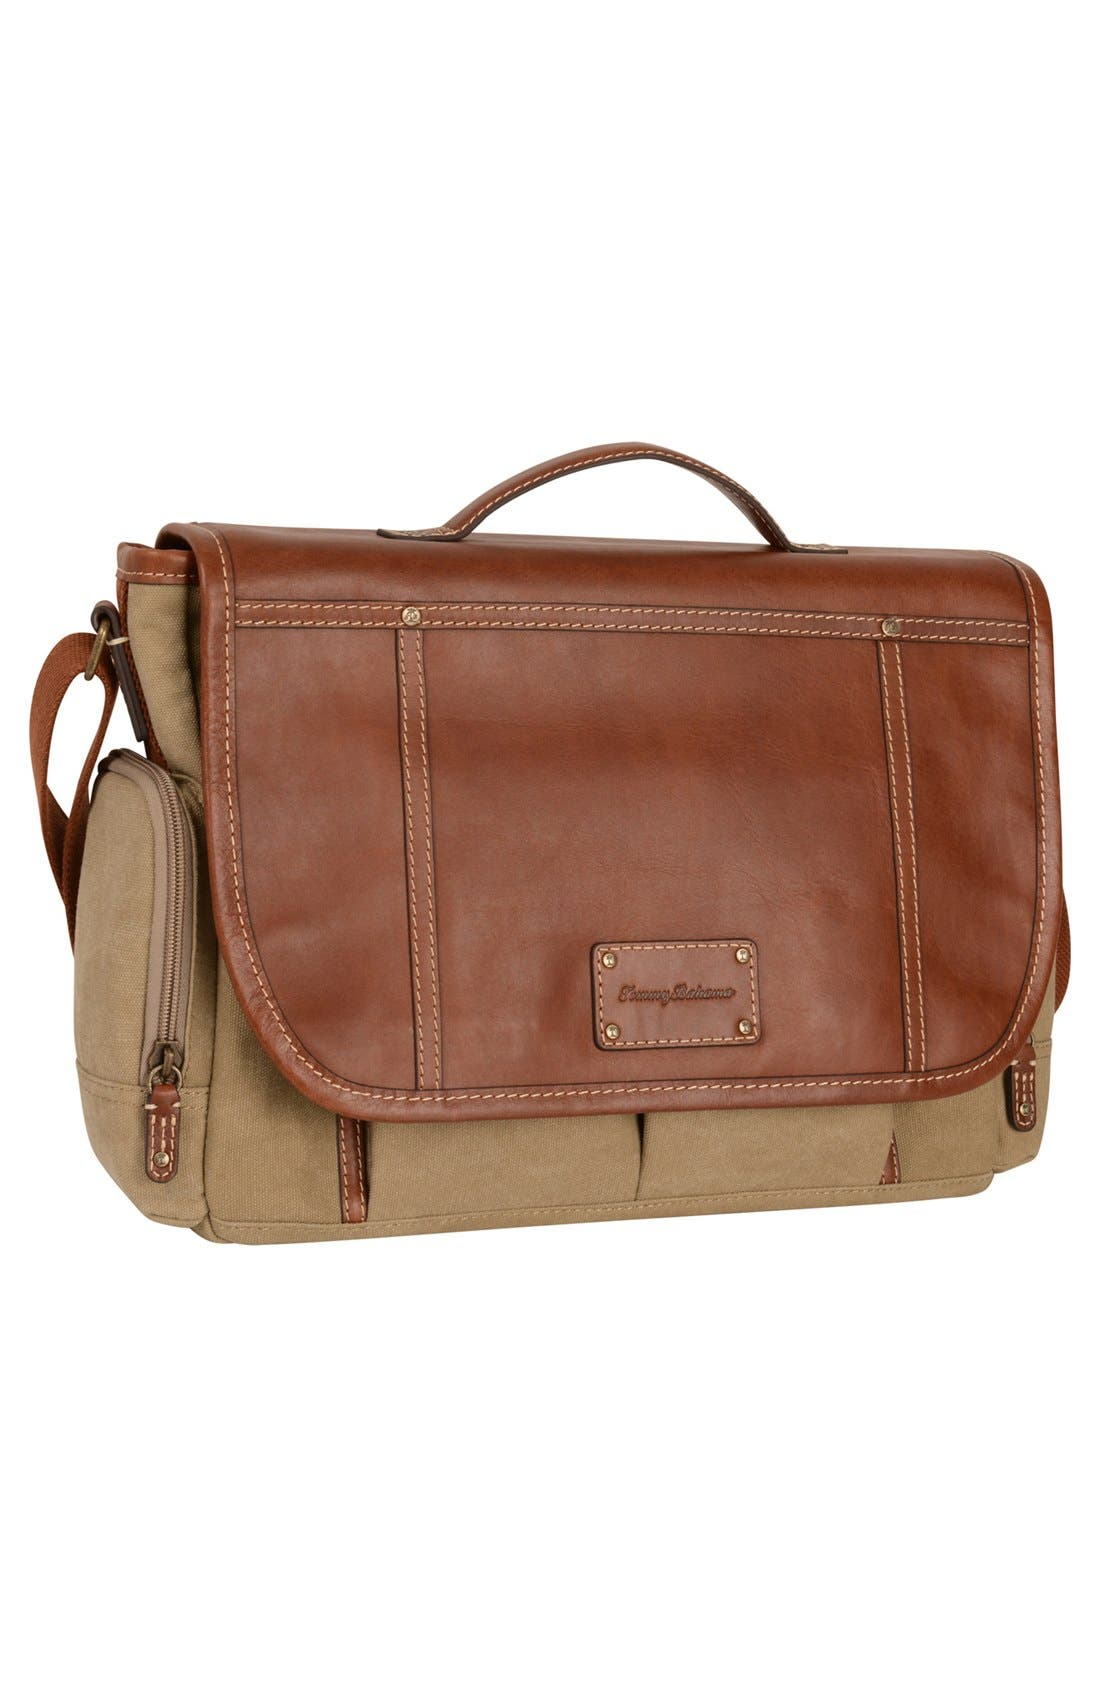 Alternate Image 1 Selected - Tommy Bahama Canvas & Leather Messenger Bag